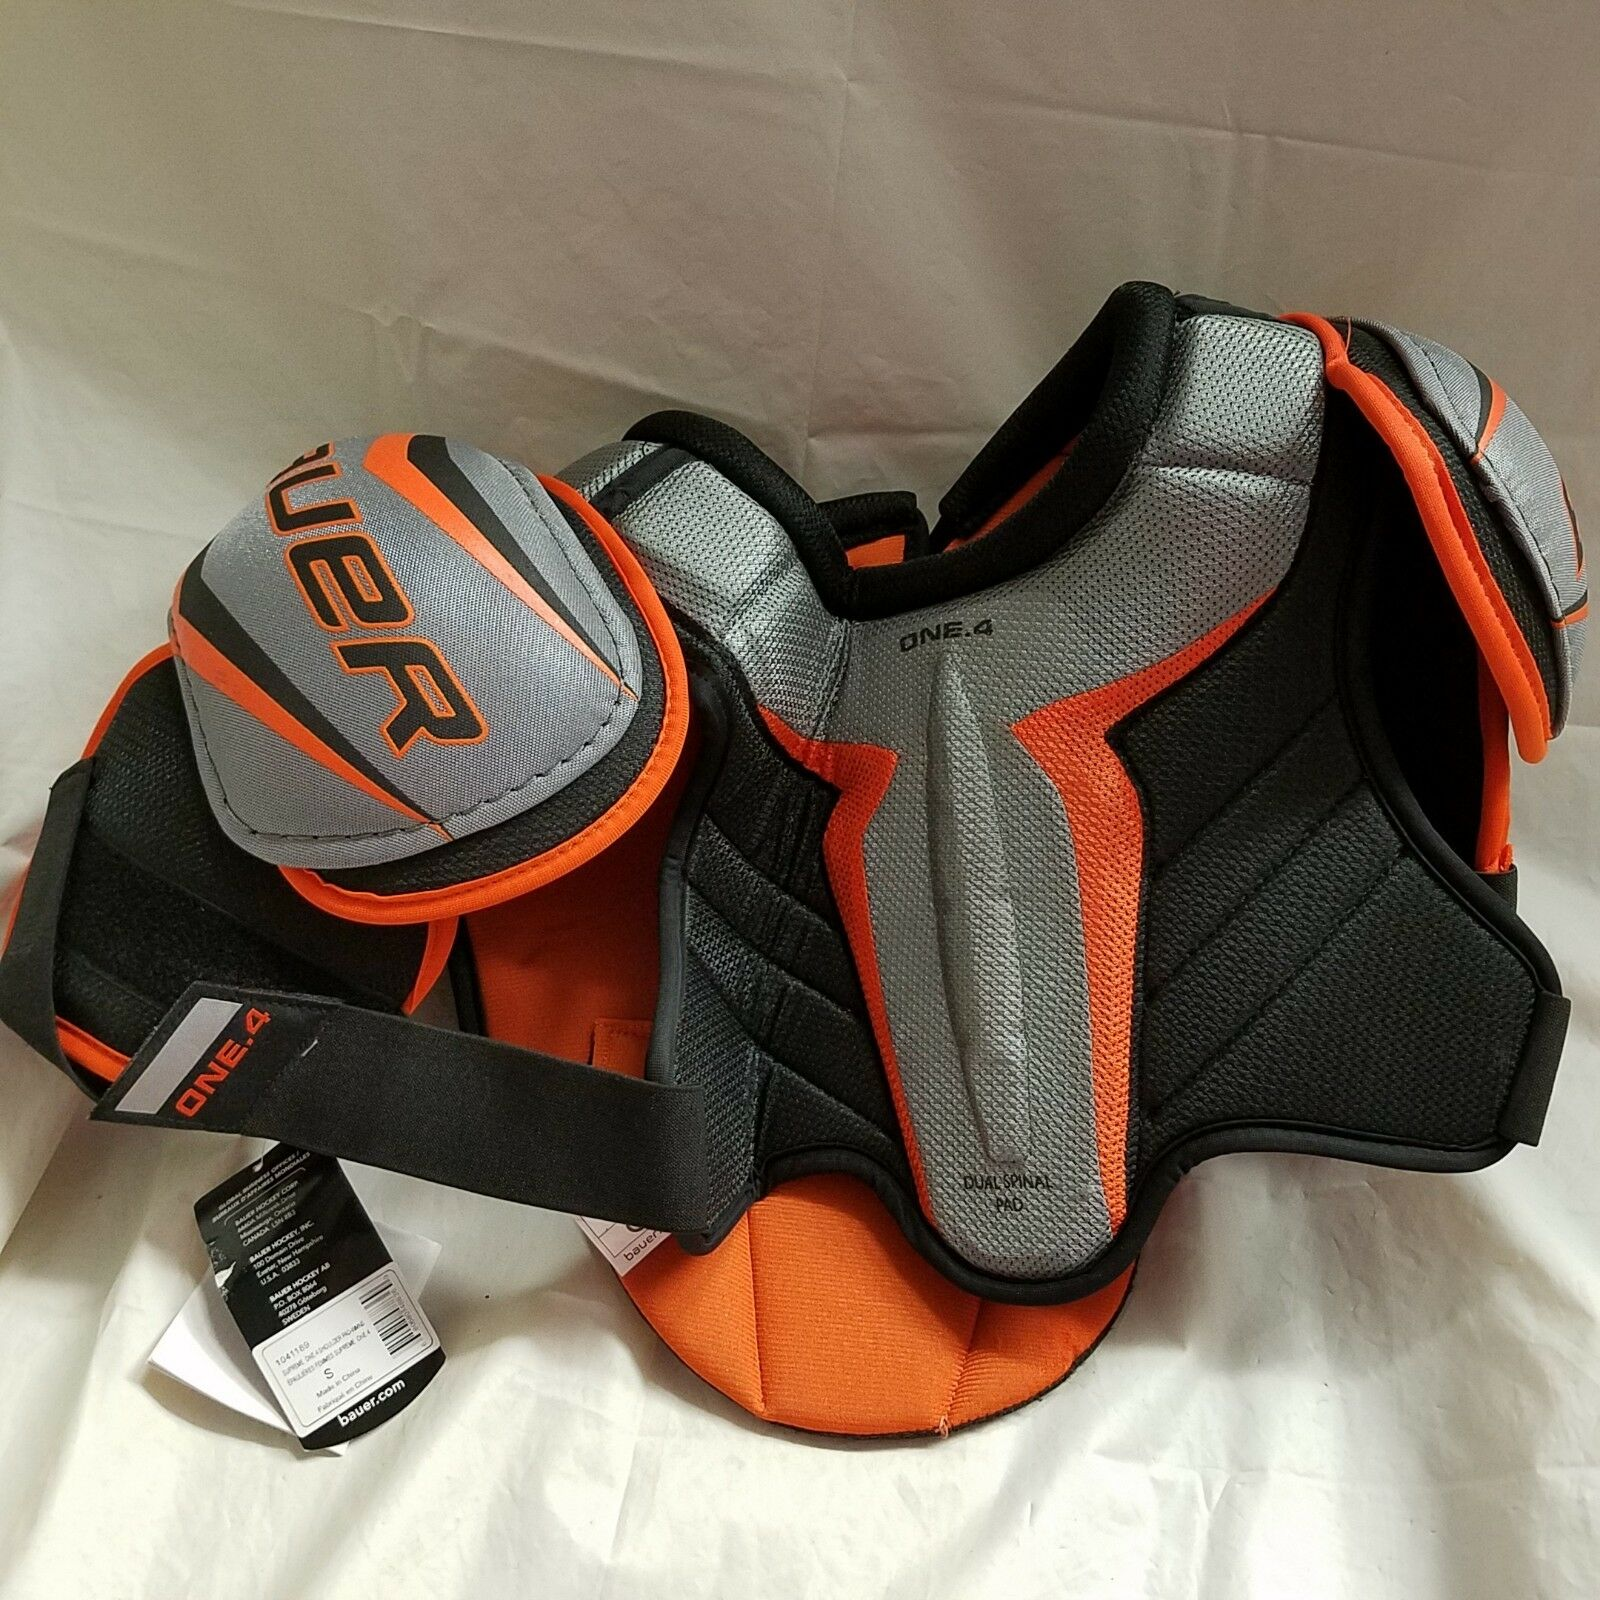 NWT Bauer Supreme One.4 Women's Shoulder Pads